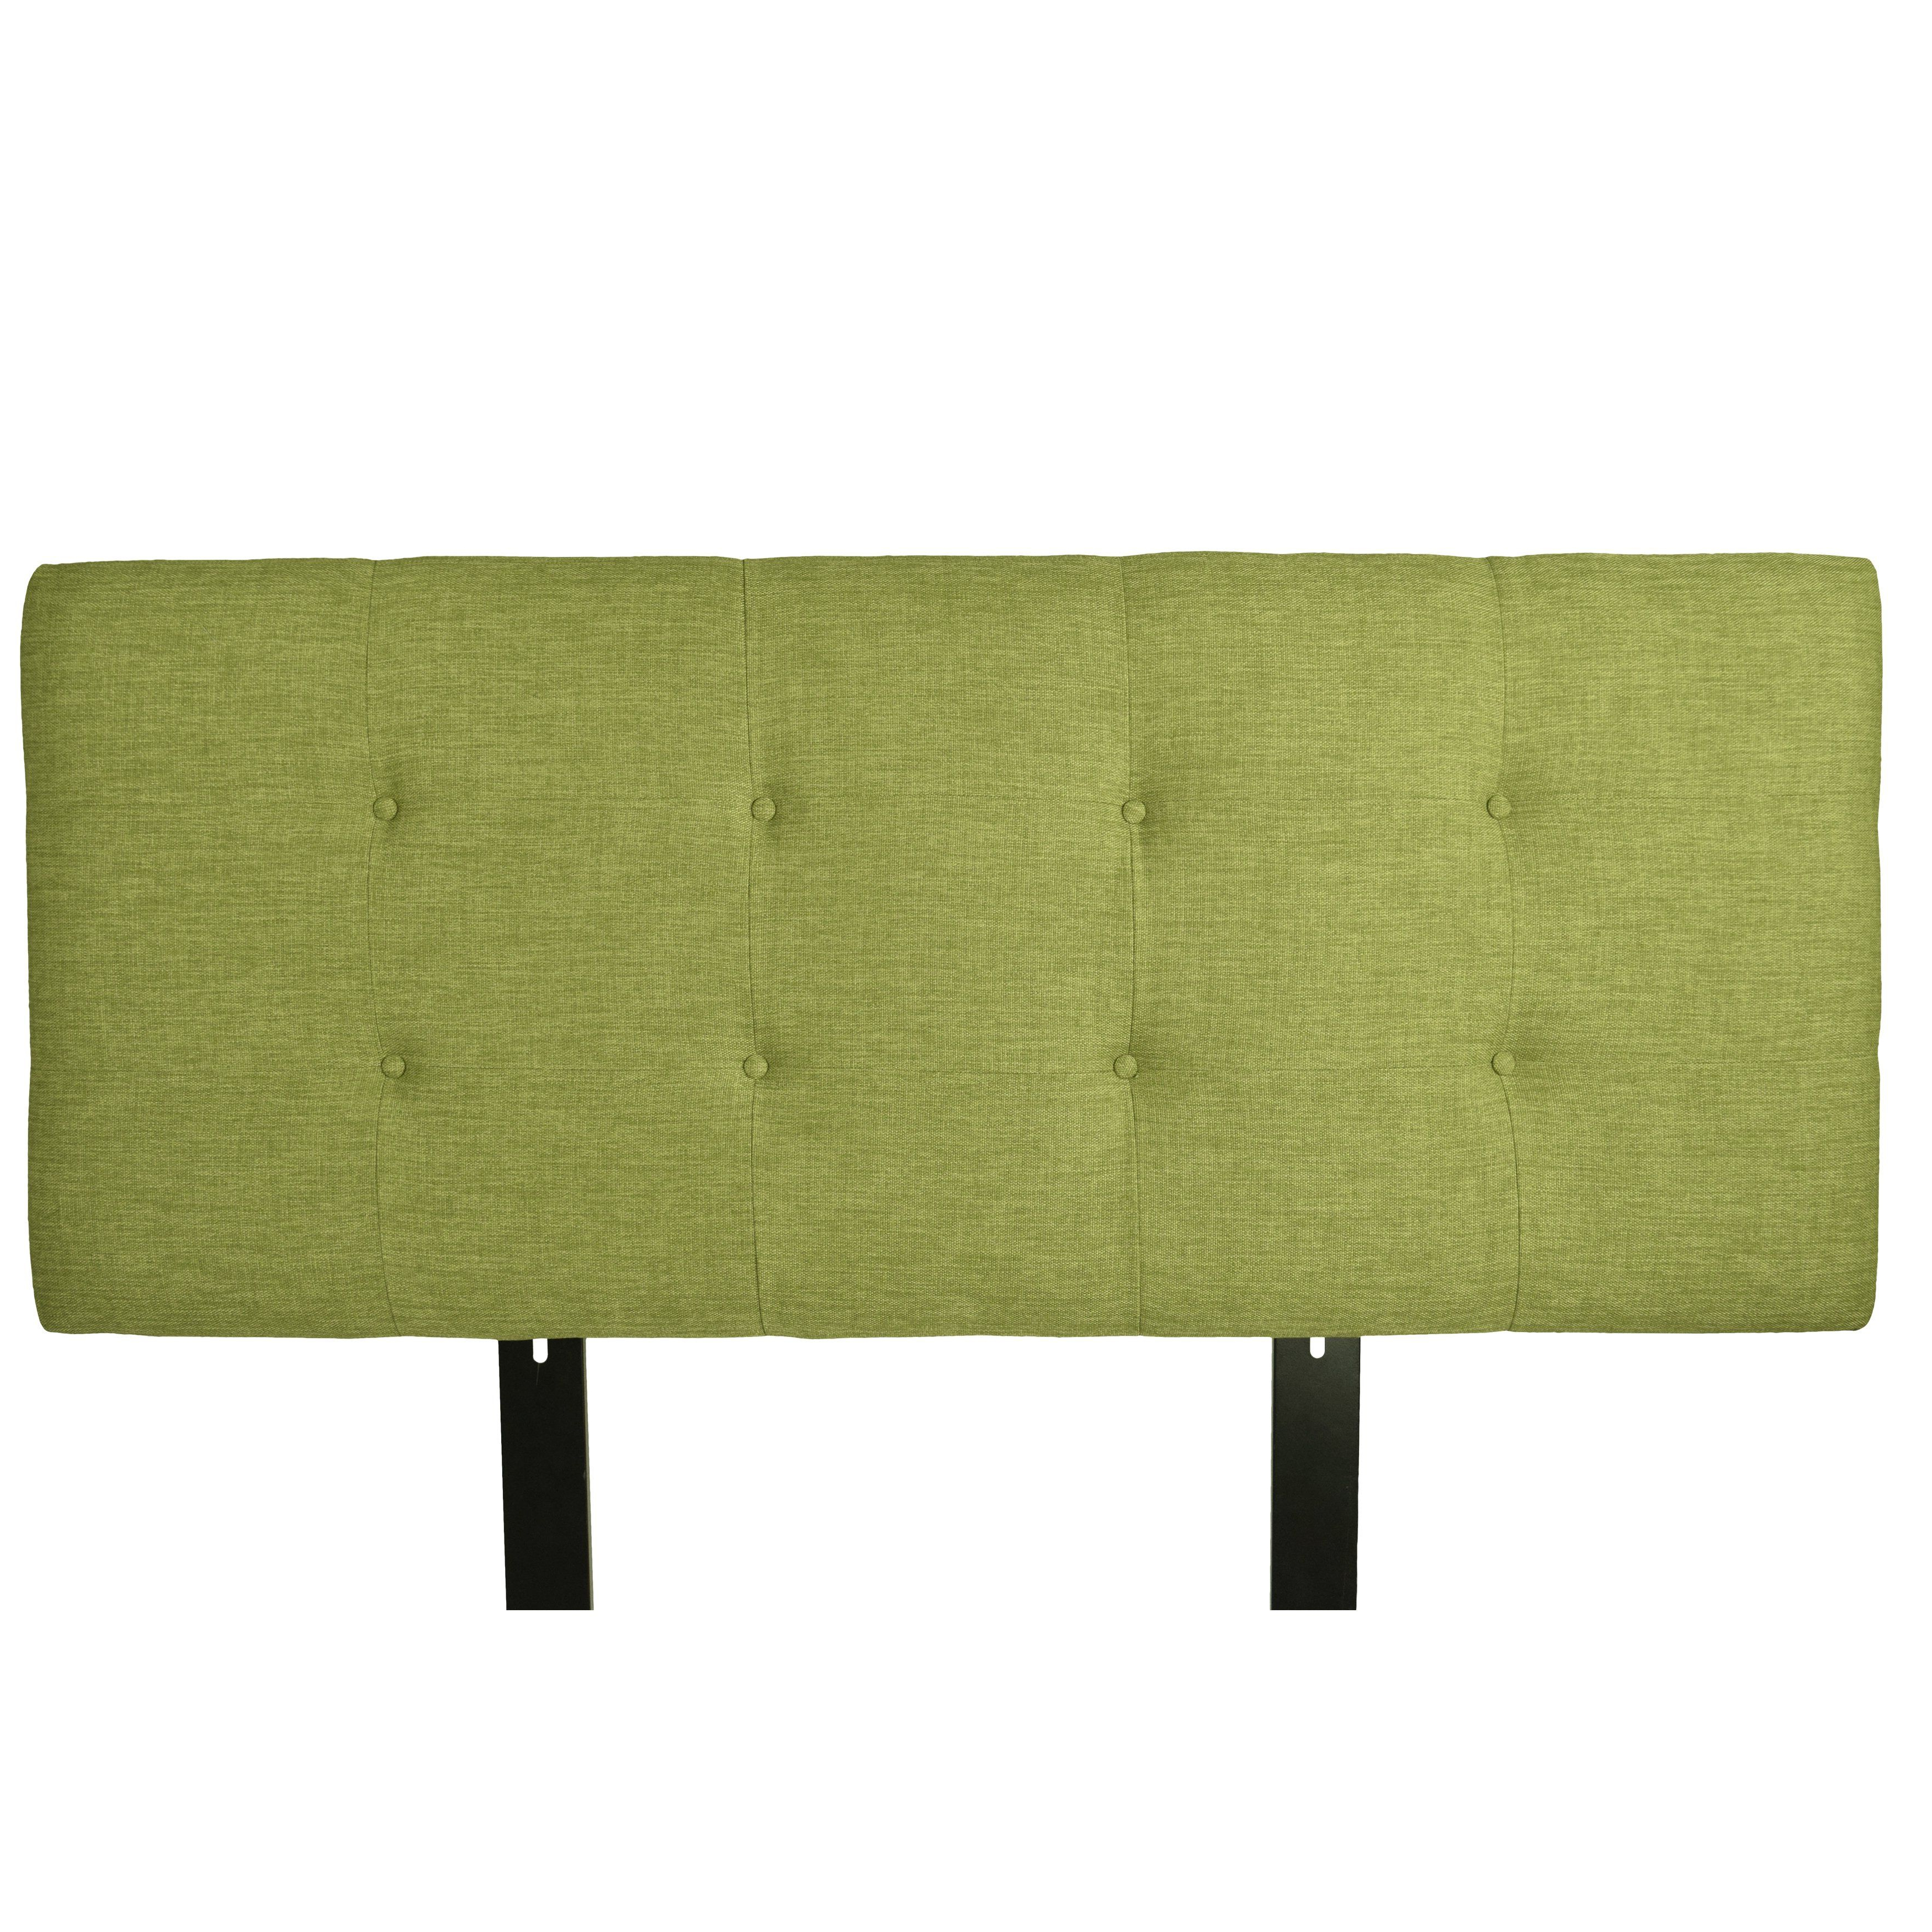 Mjl Furniture Ali Button Tufted Key Largo Grass Upholstered In Parsons Concrete Top & Brass Base 48X16 Console Tables (View 12 of 20)